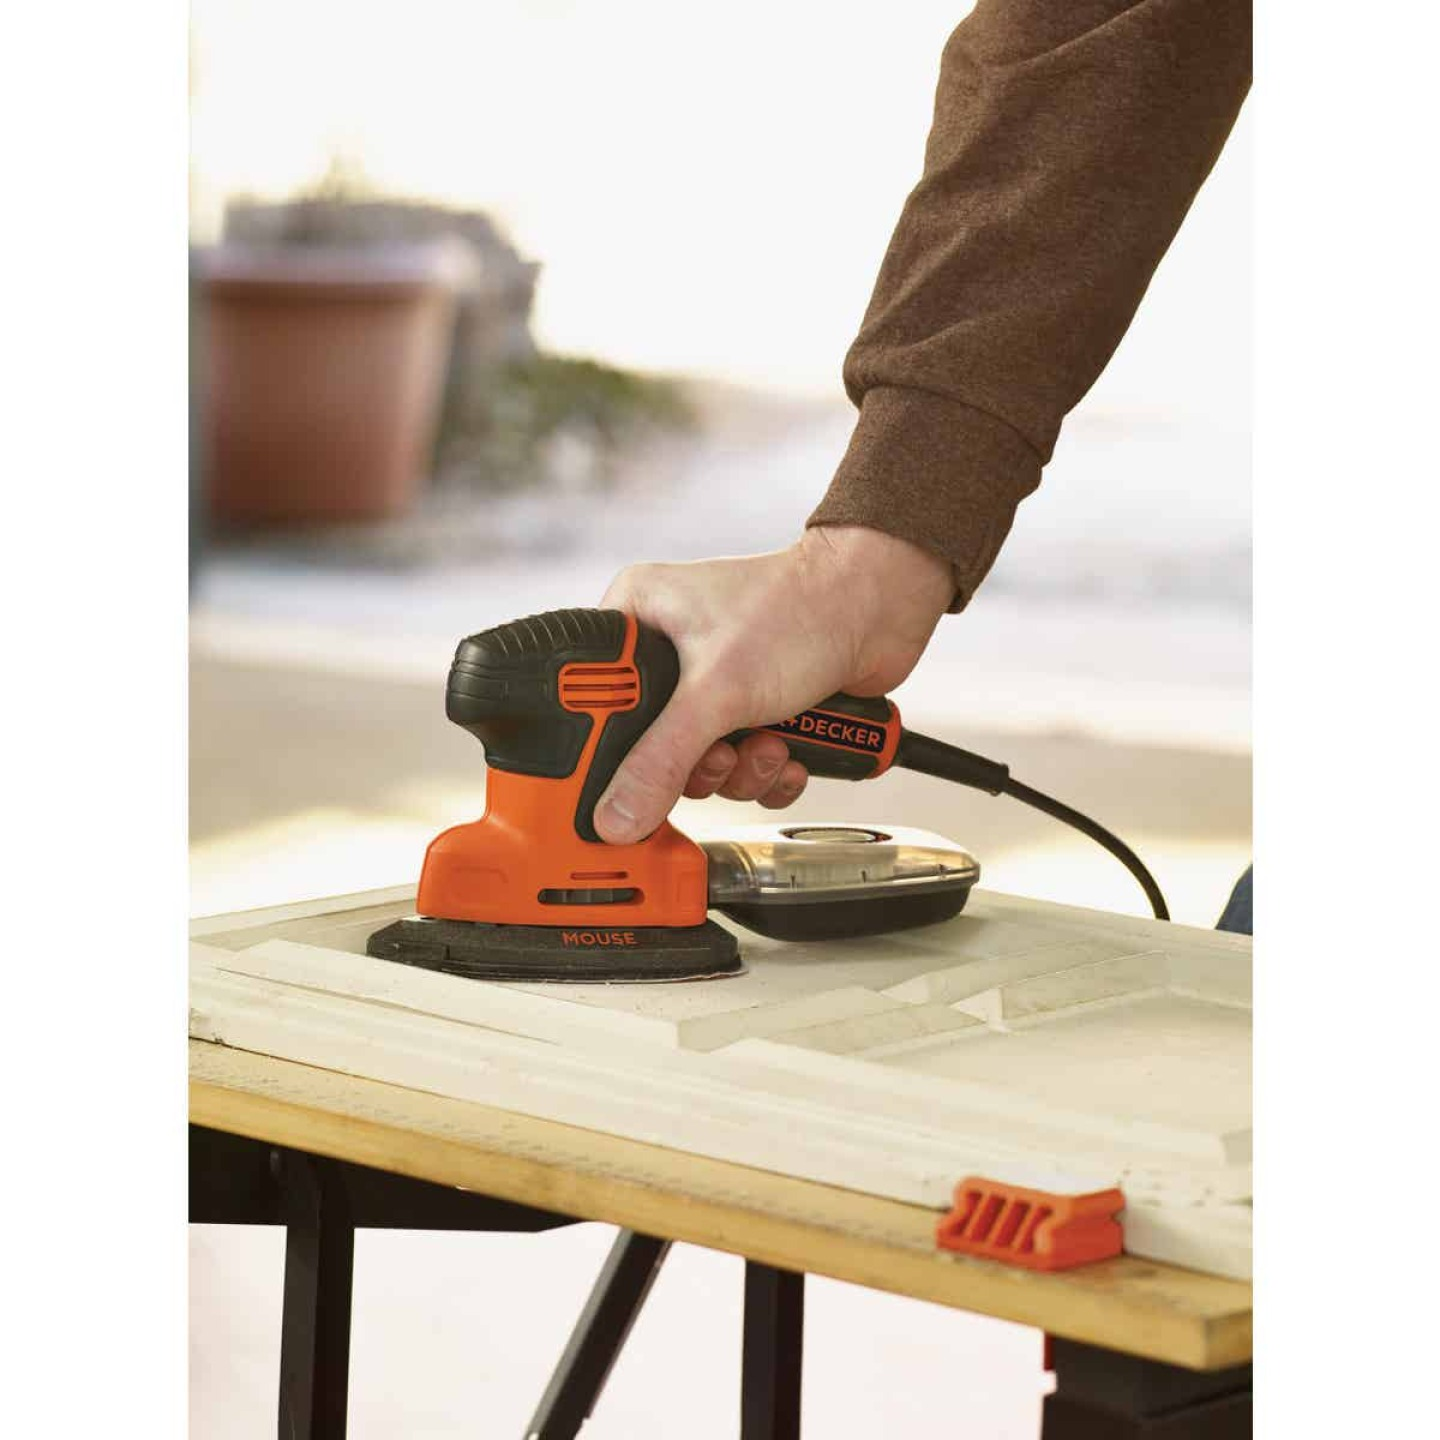 Black & Decker Mouse 10 In. 1.2A Finish Sander Image 3